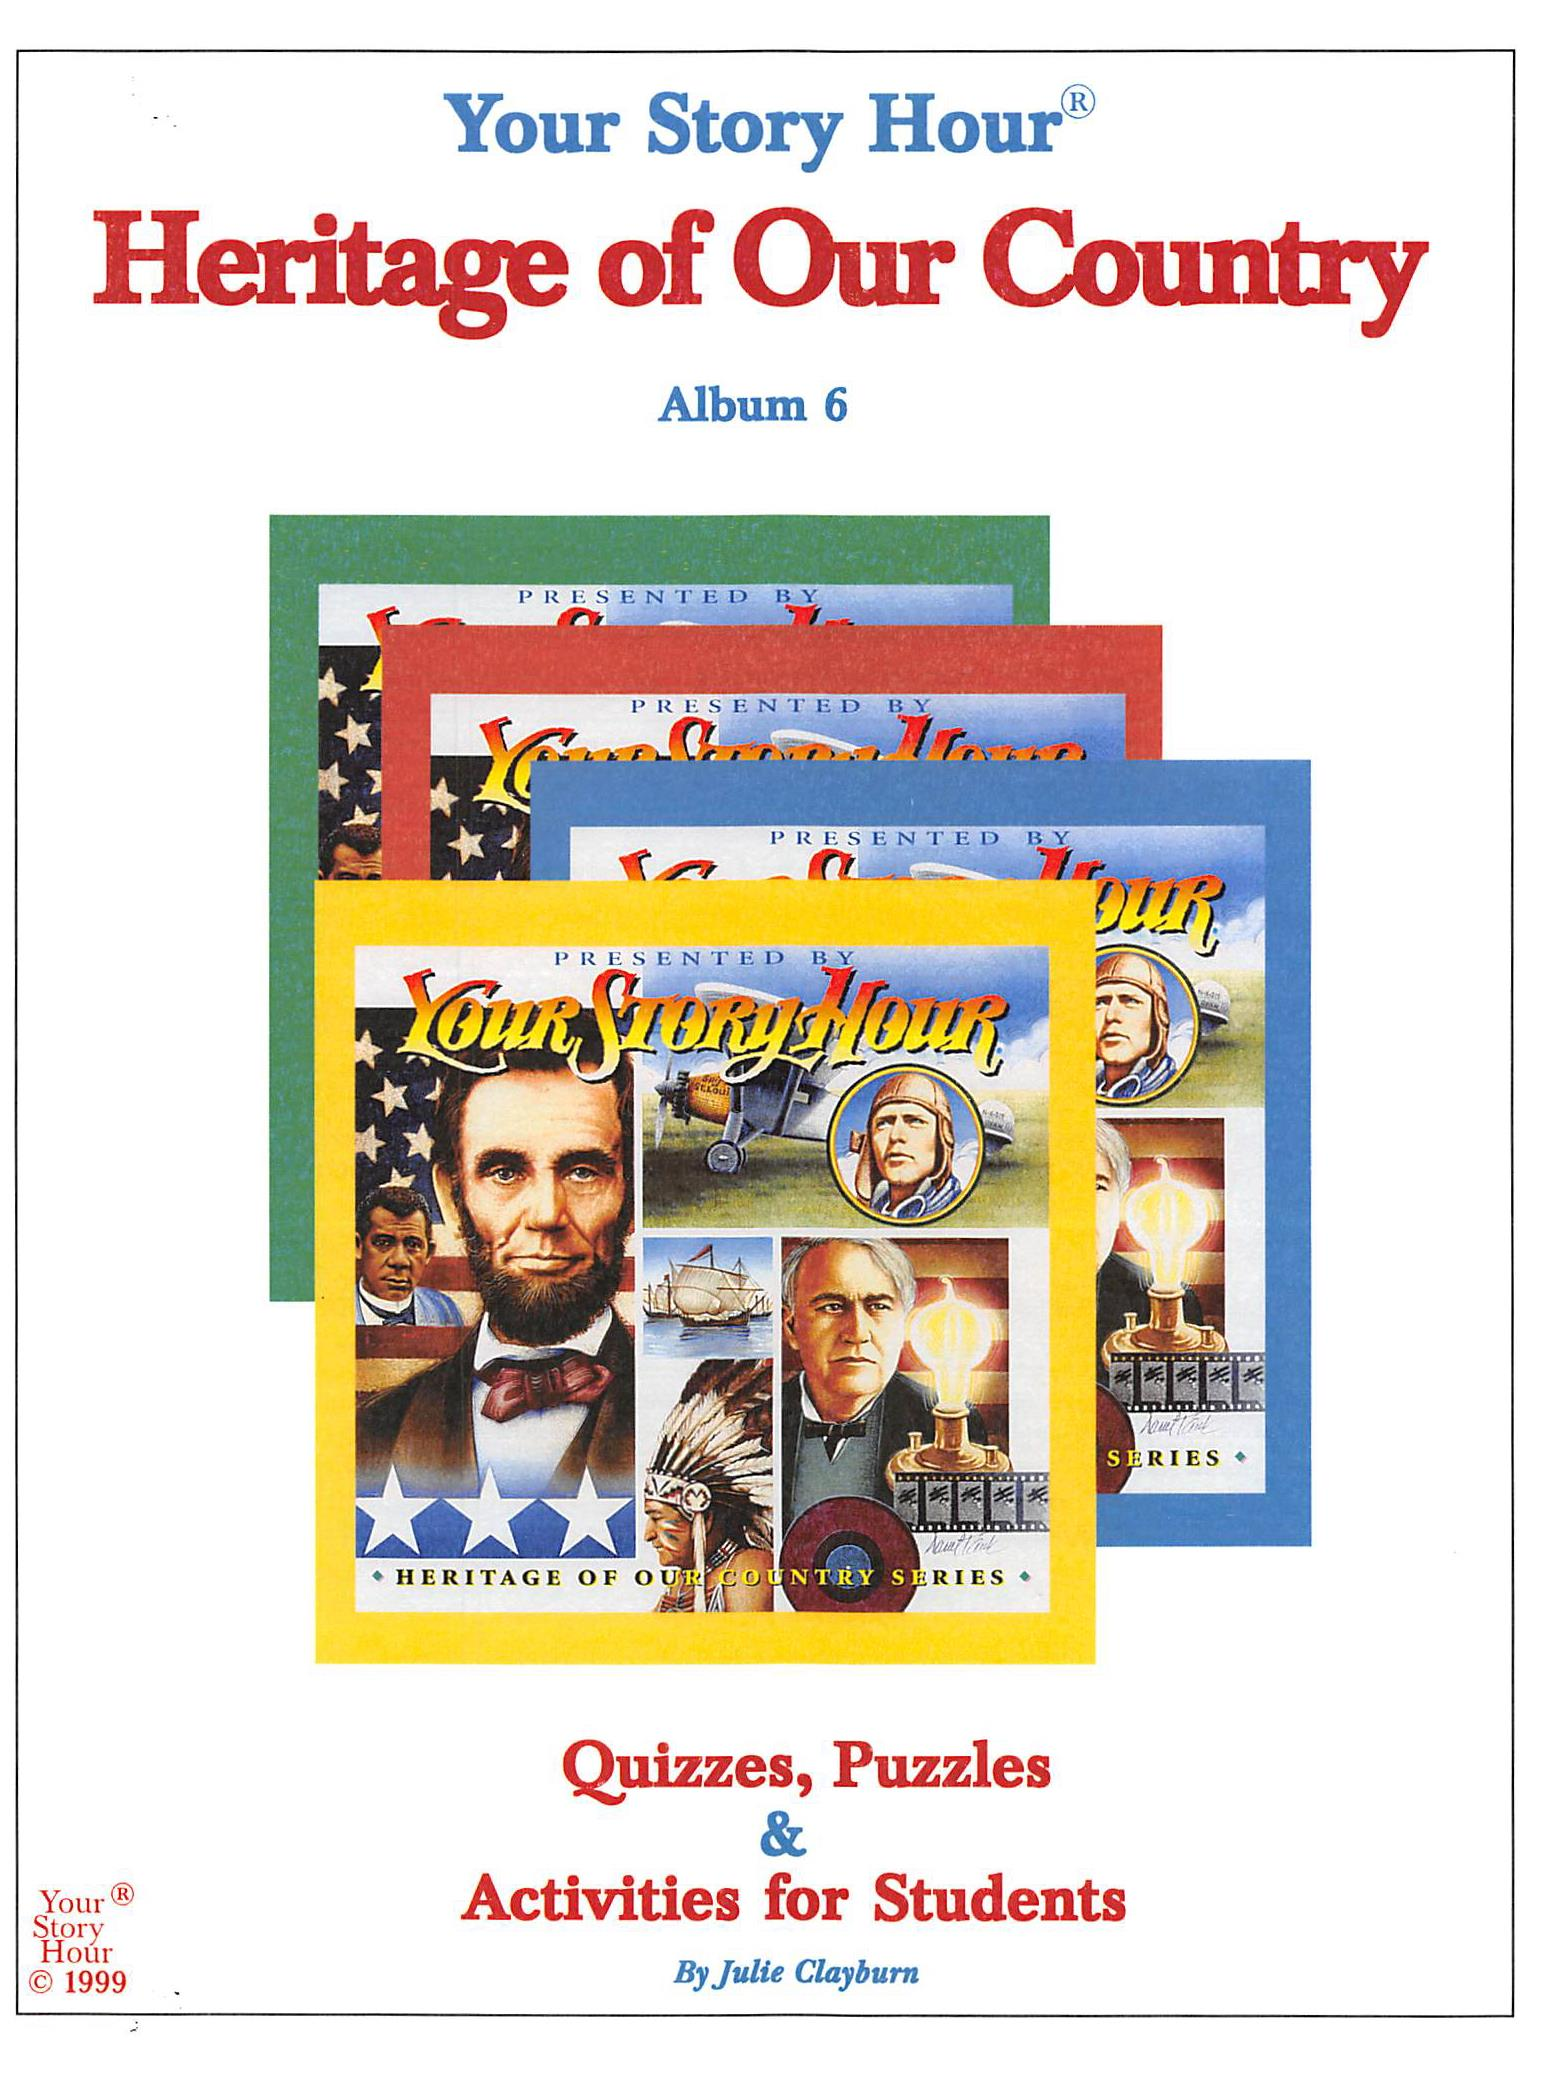 Your Story Hour Heritage of Our Country - Activity Book